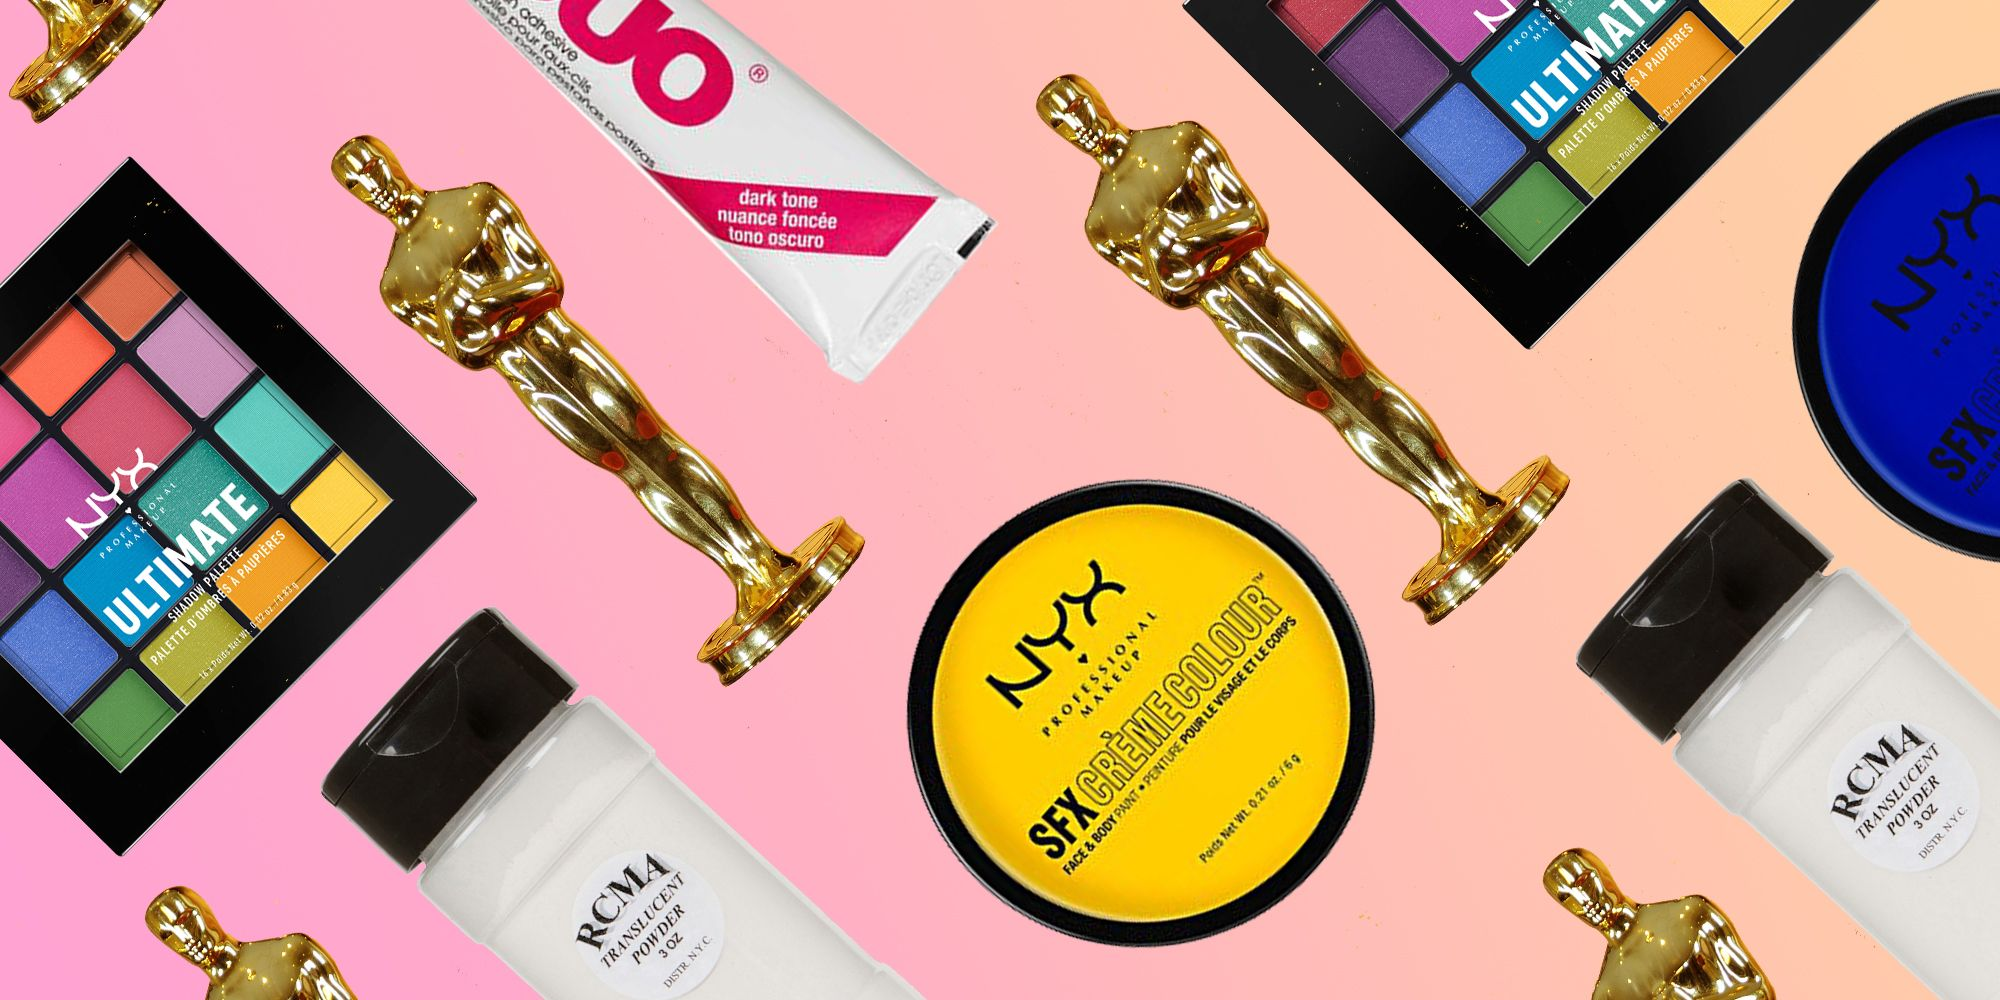 9 products an Oscar winning makeup artist can't live without